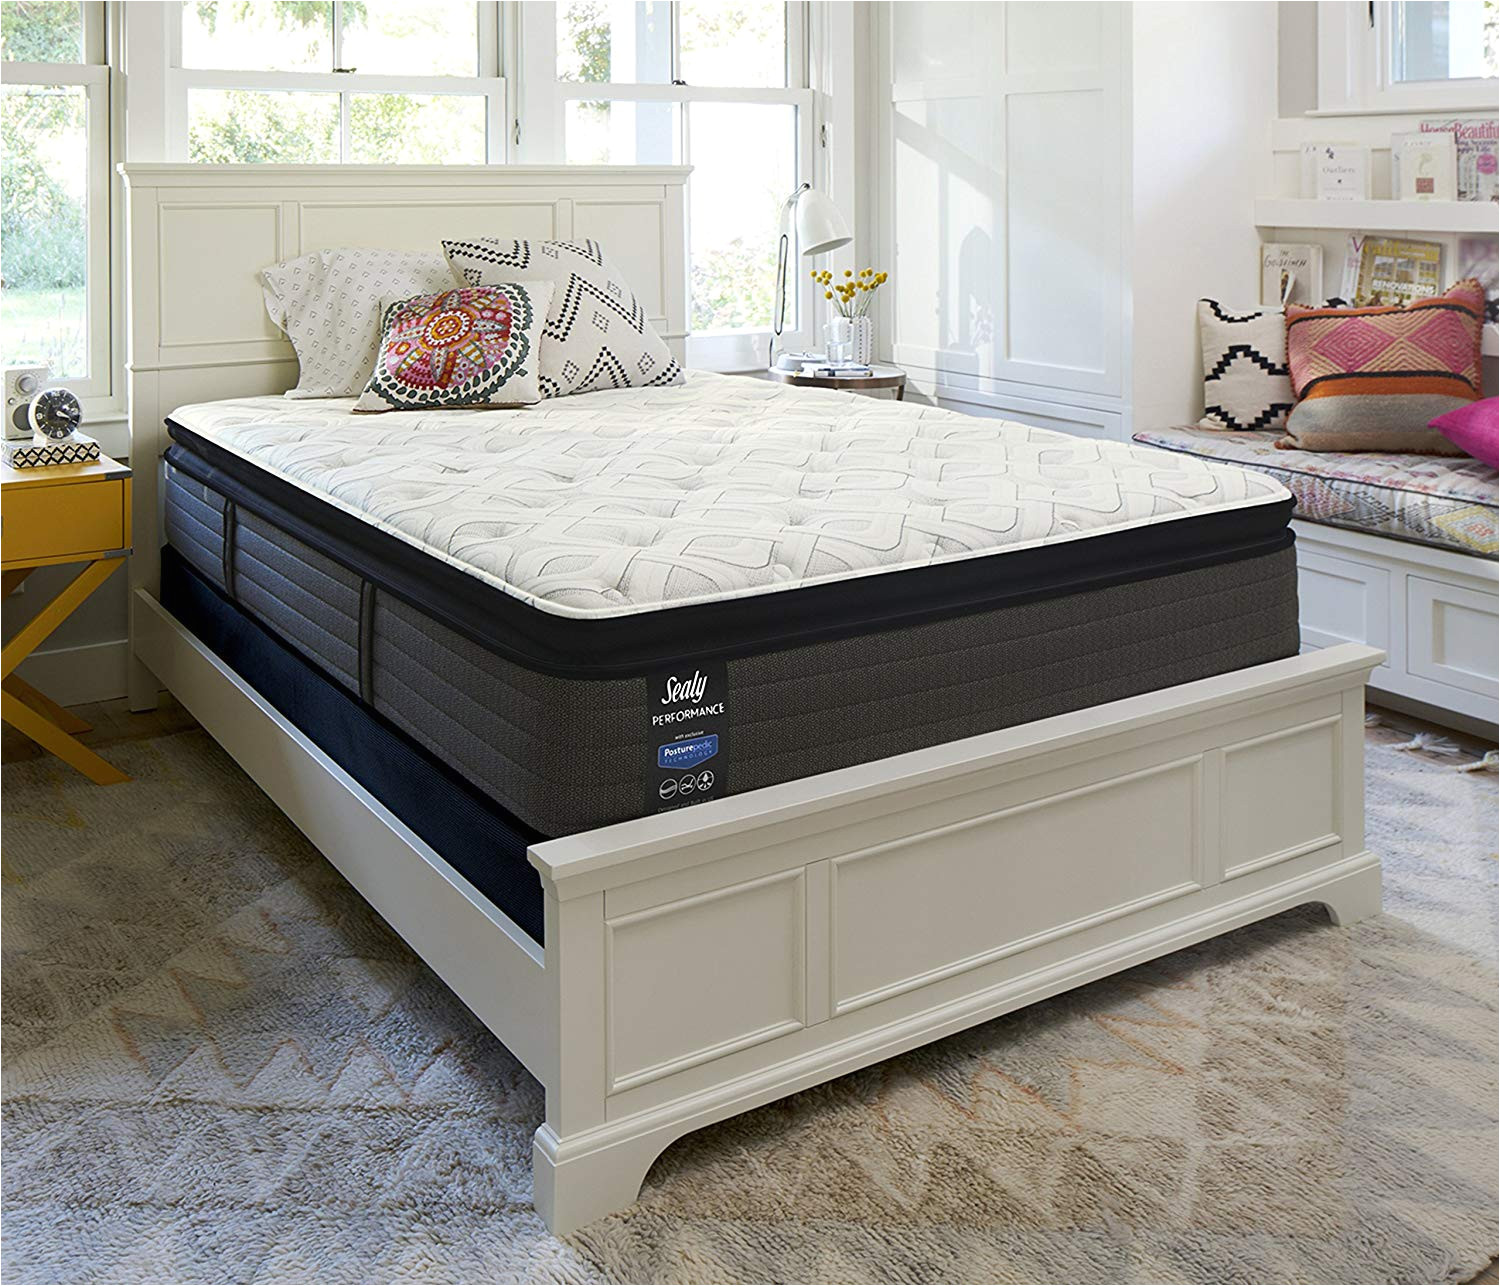 amazon com sealy response performance 14 inch cushion firm euro pillow top pro mattress queen made in usa 10 year warranty kitchen dining